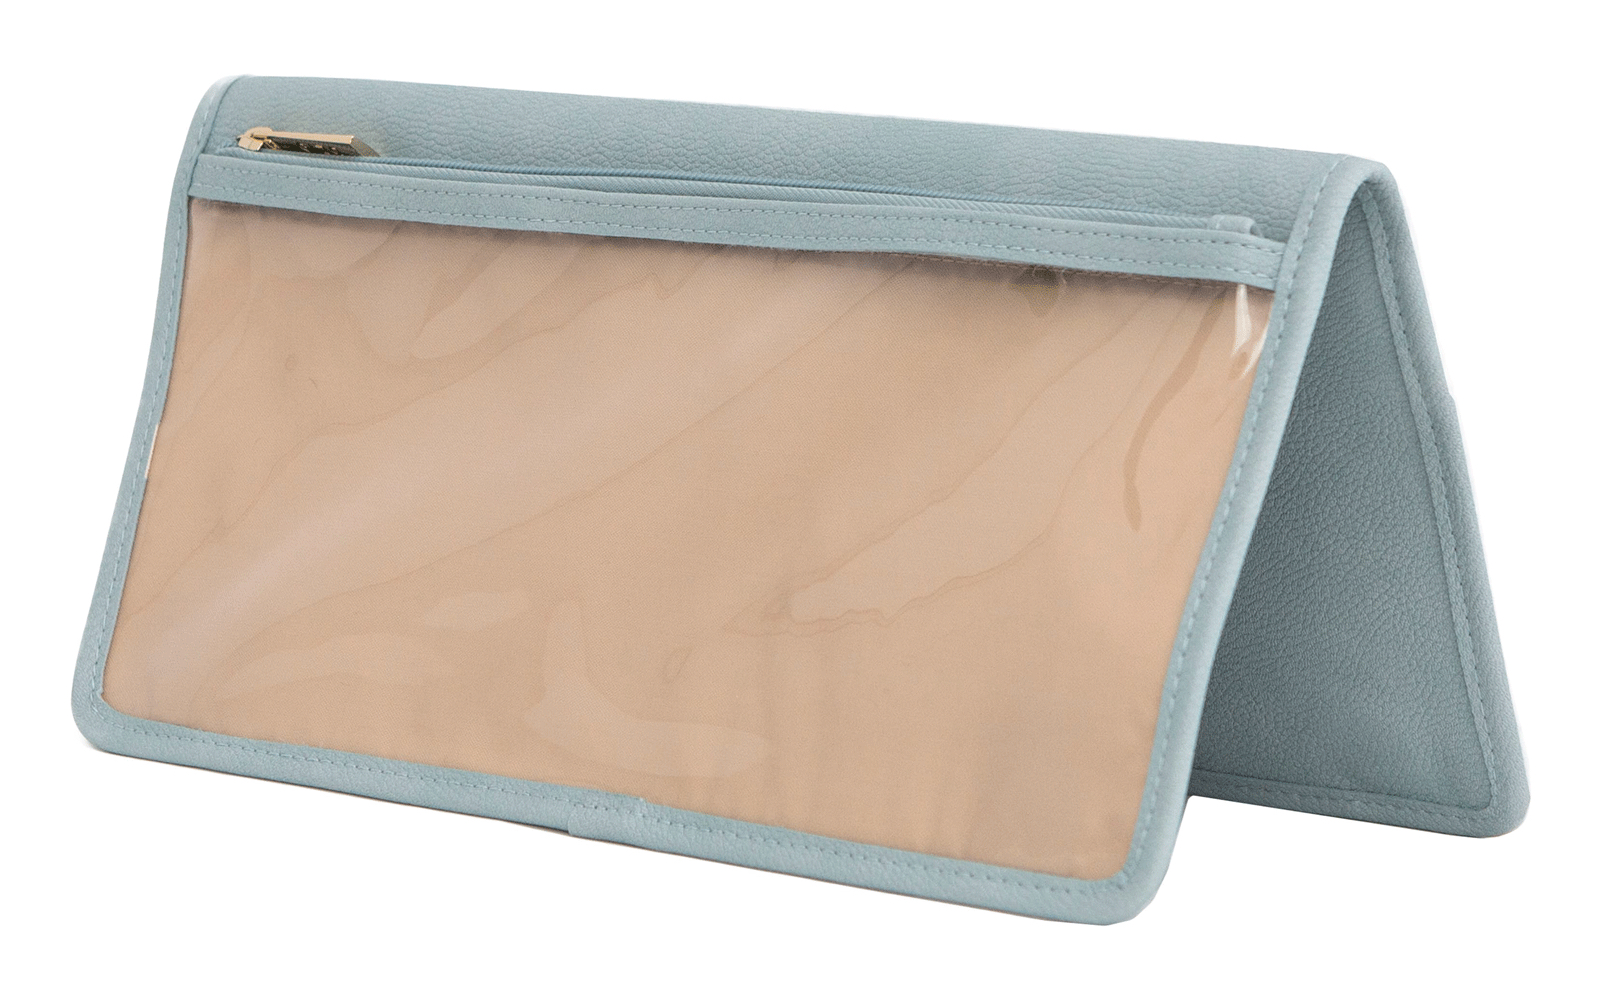 Blue and Tan Faux Leather Organizer Pouch